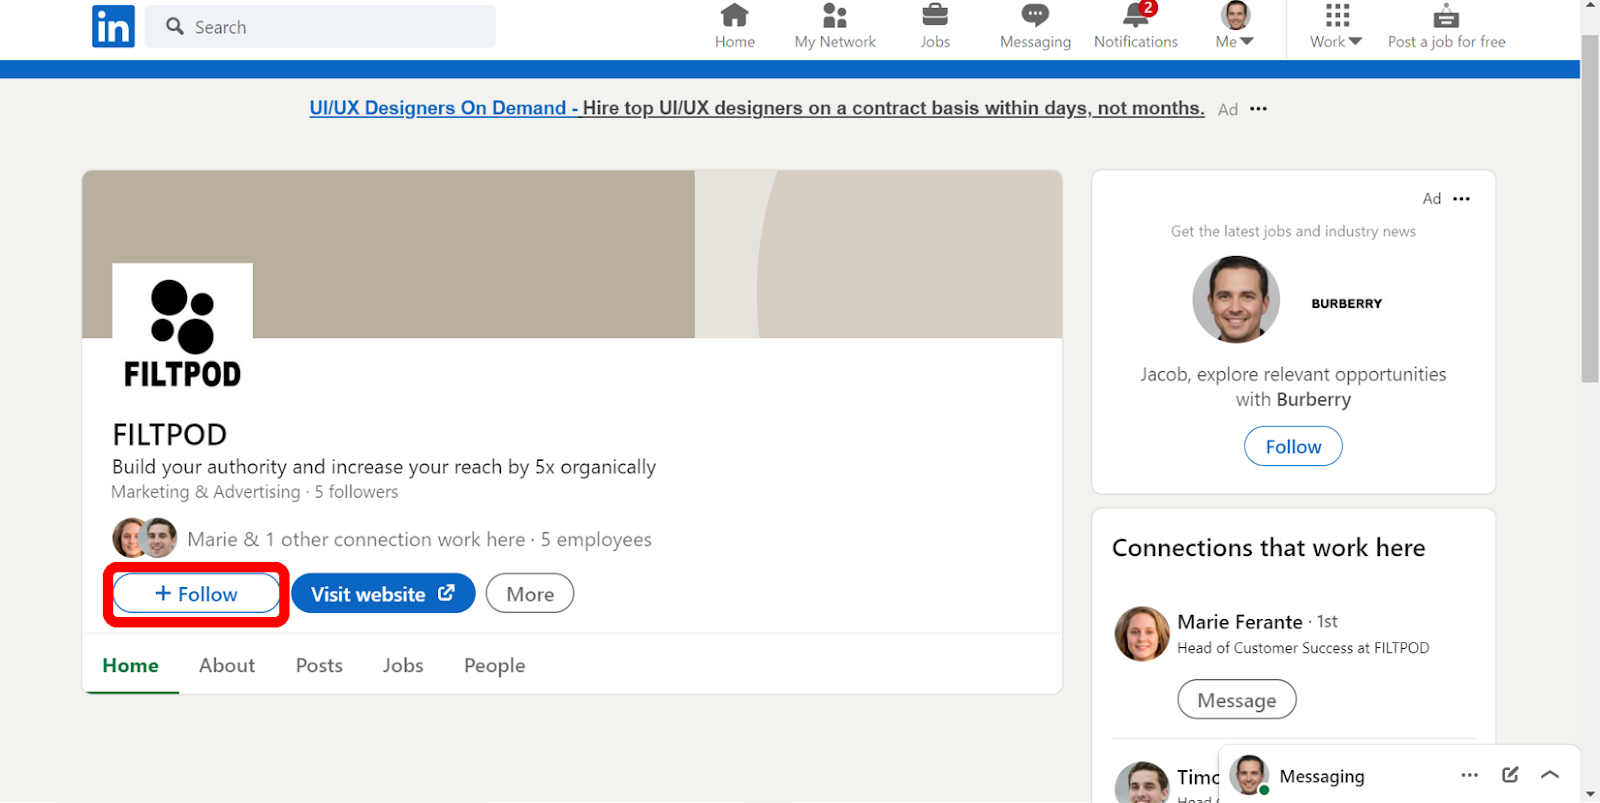 How to Add Interests on LinkedIn: Follow Them